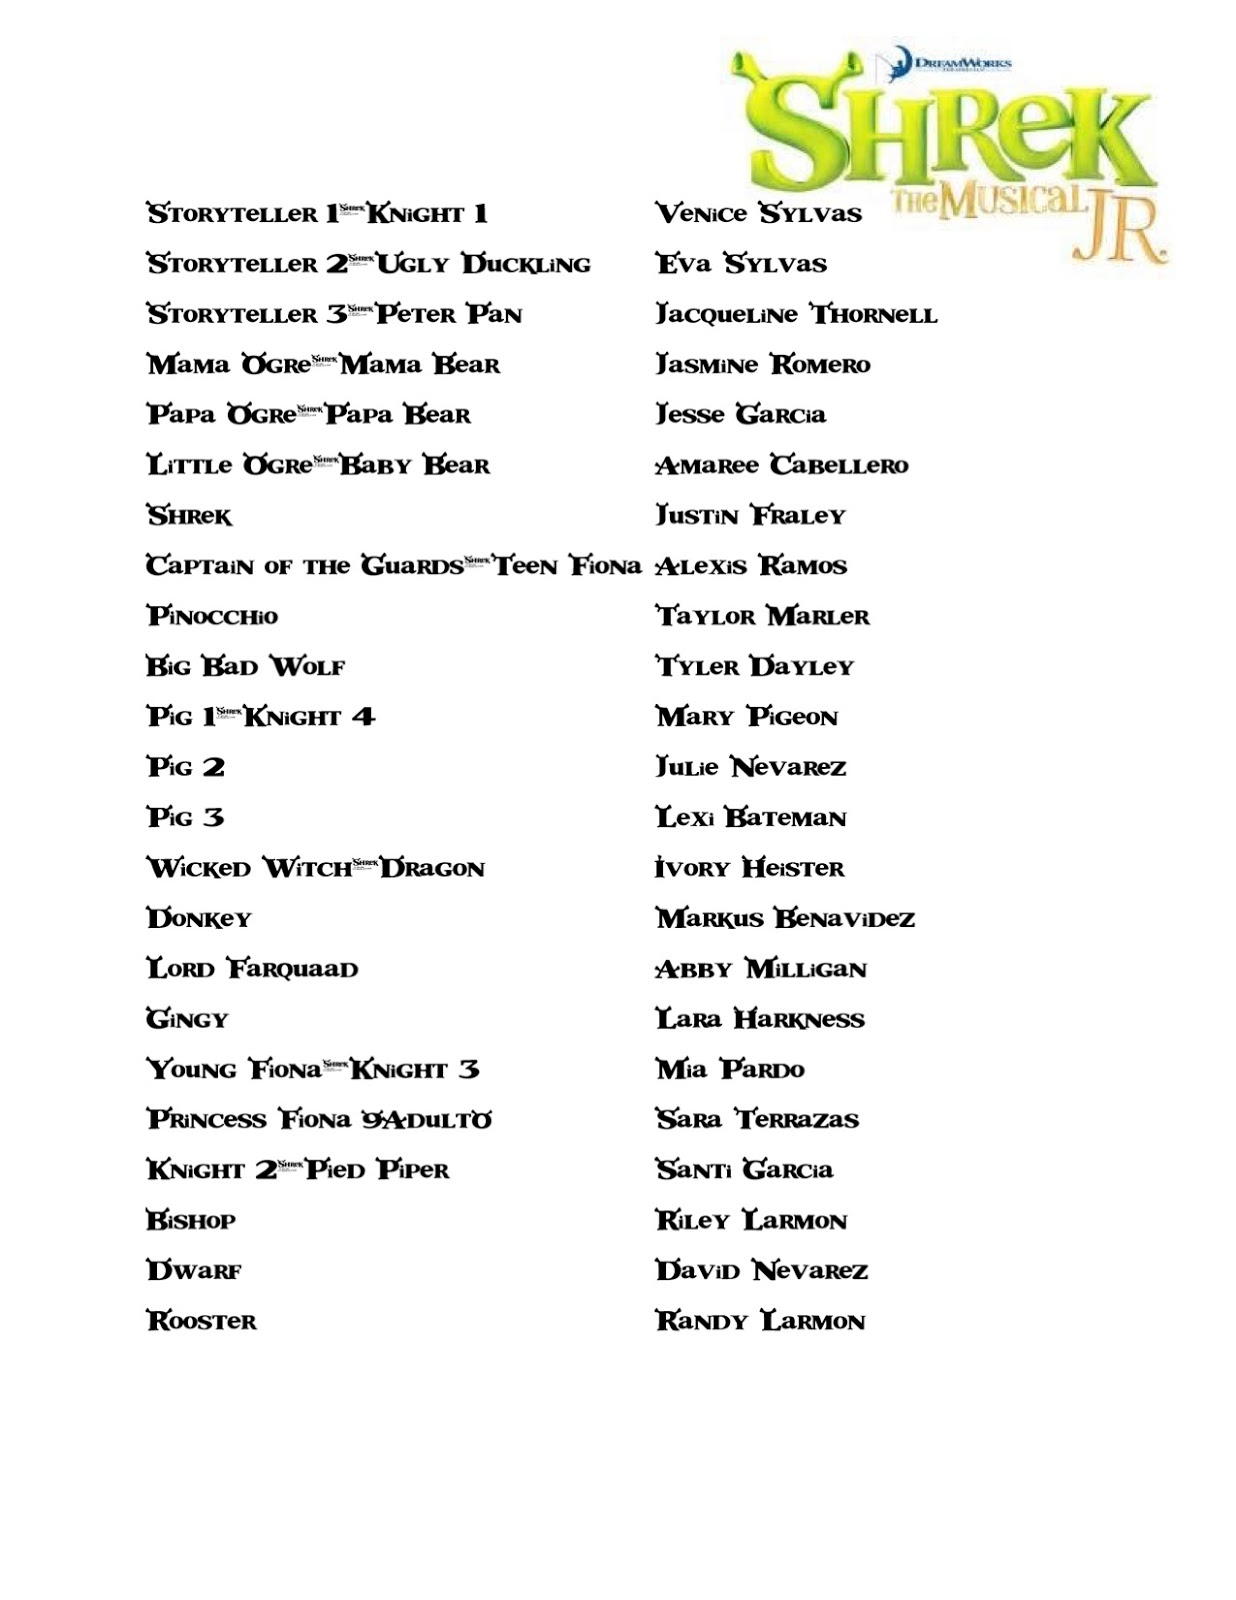 List Of Characters Pics For Gt Shrek The Musical Broadway